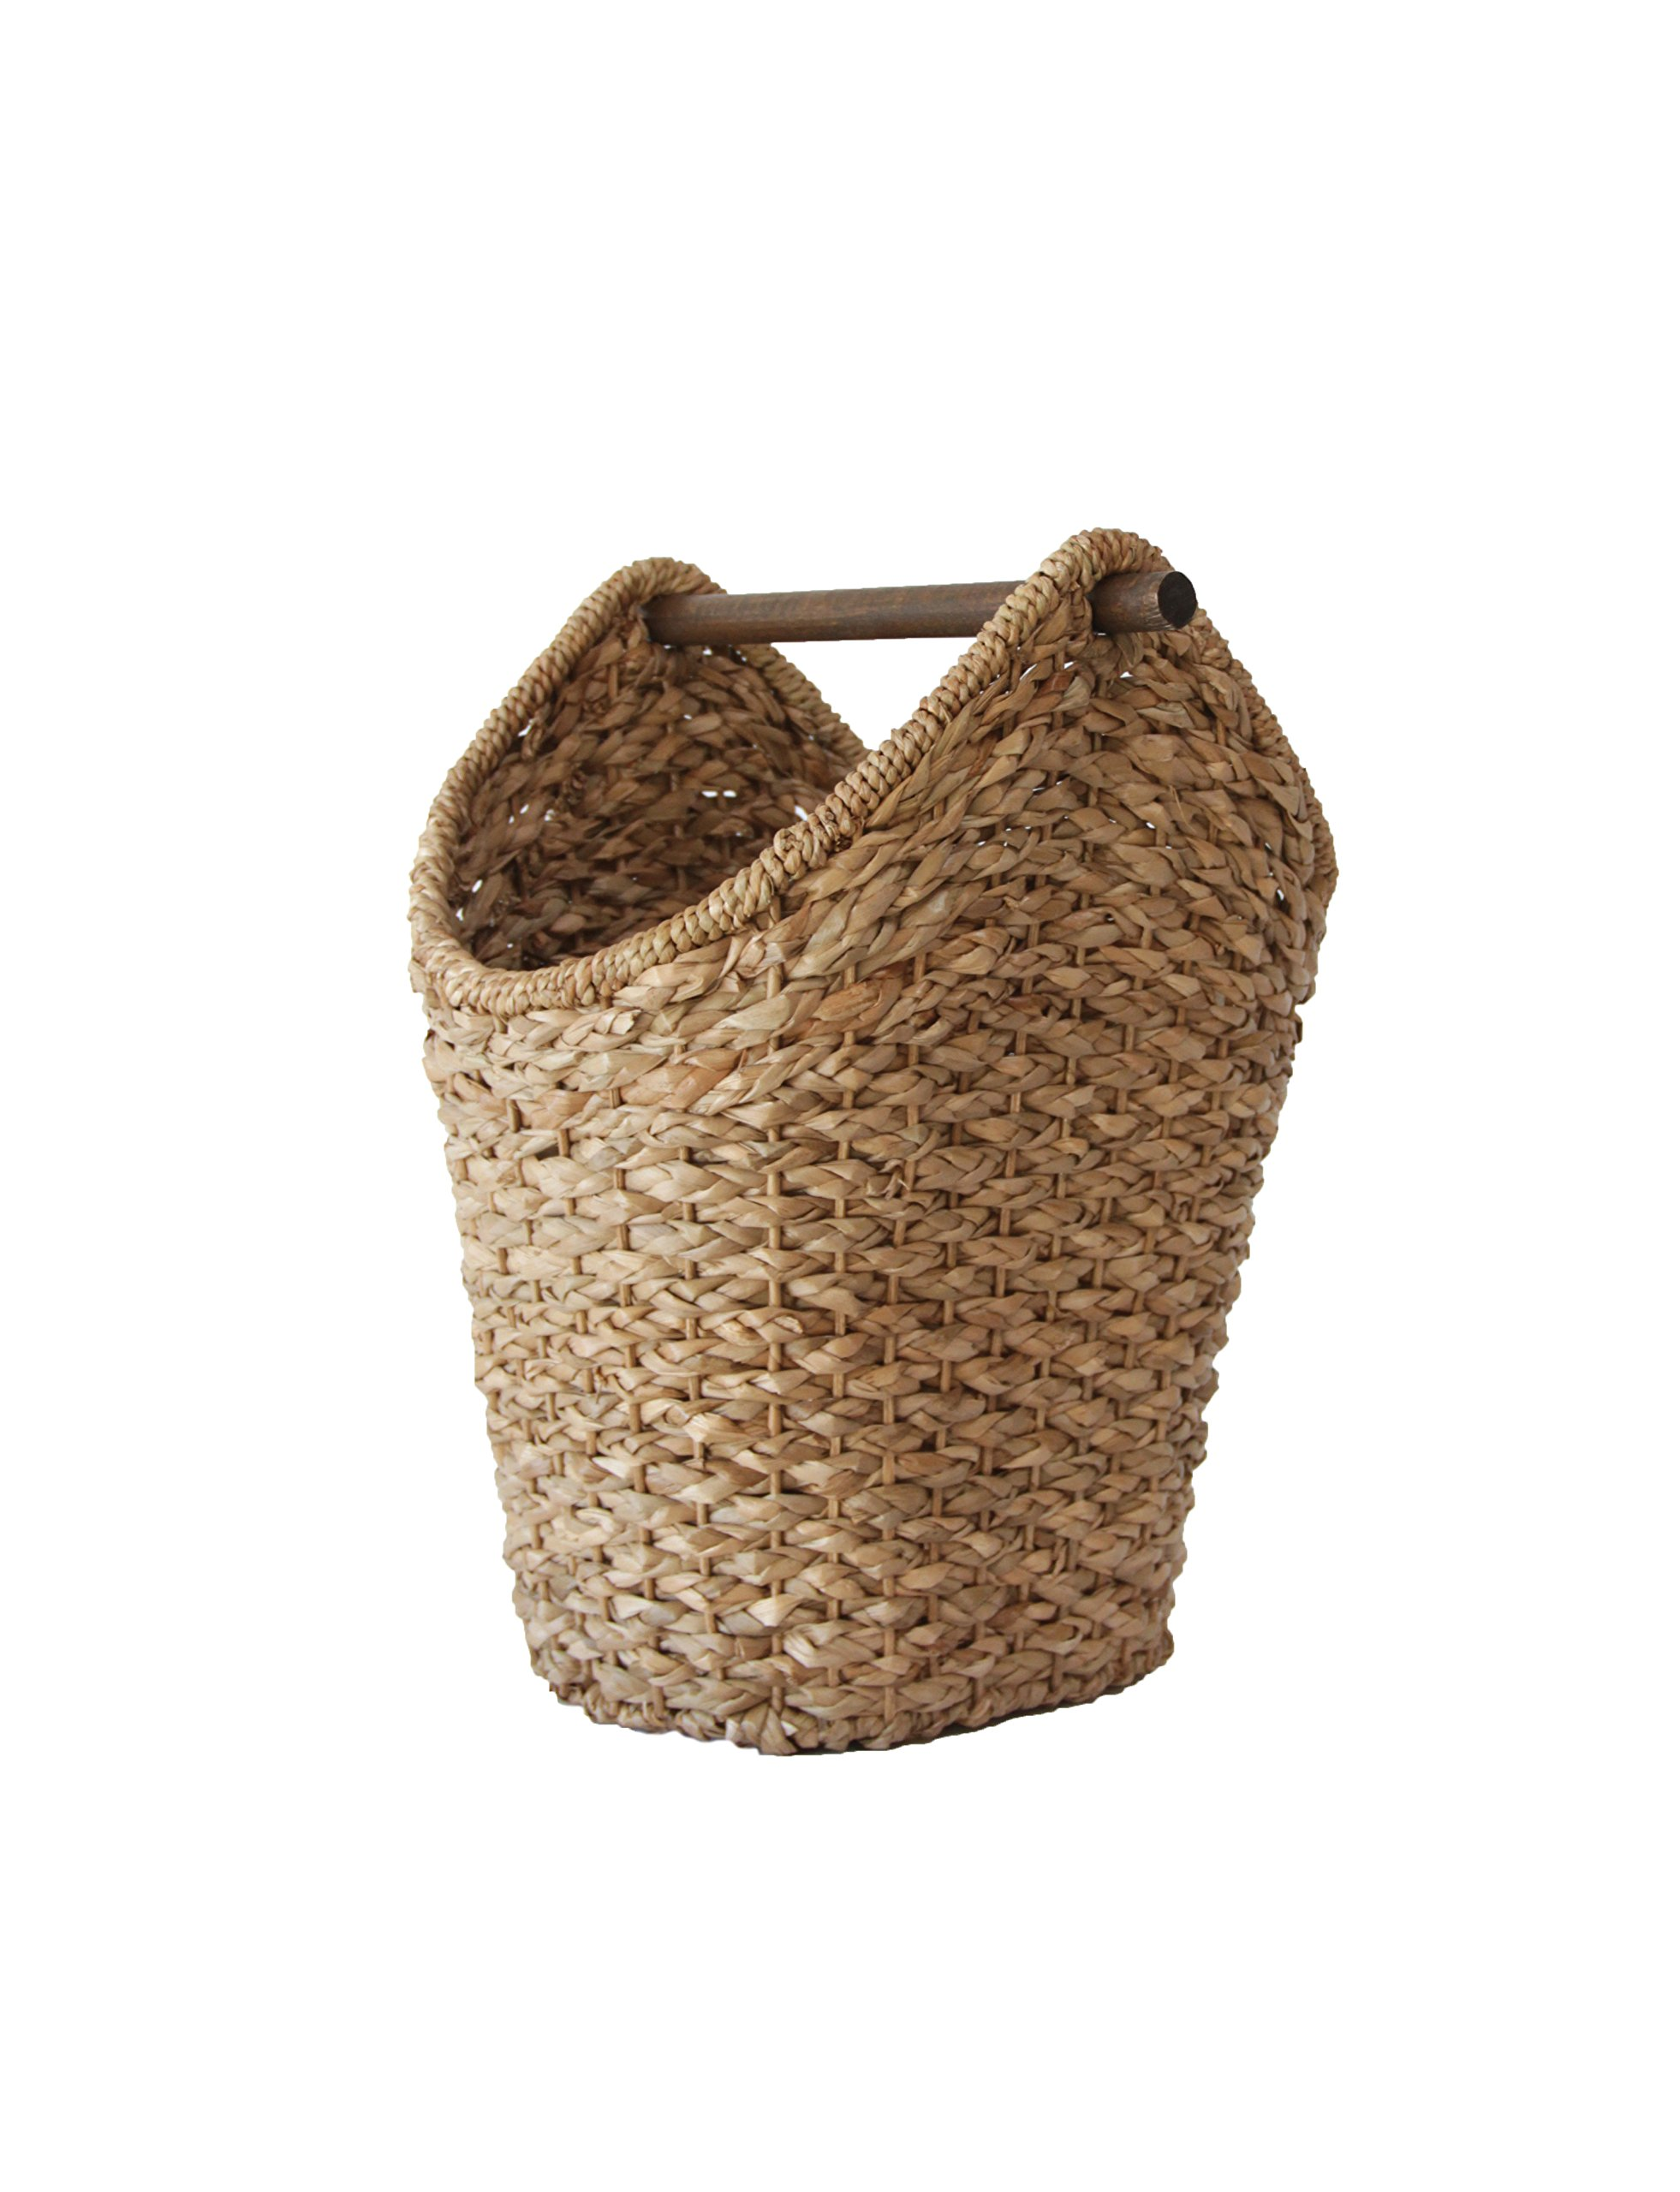 Creative Co-op DA4836 Bankuan Braided Oval Toilet Paper Basket with Wood Bar